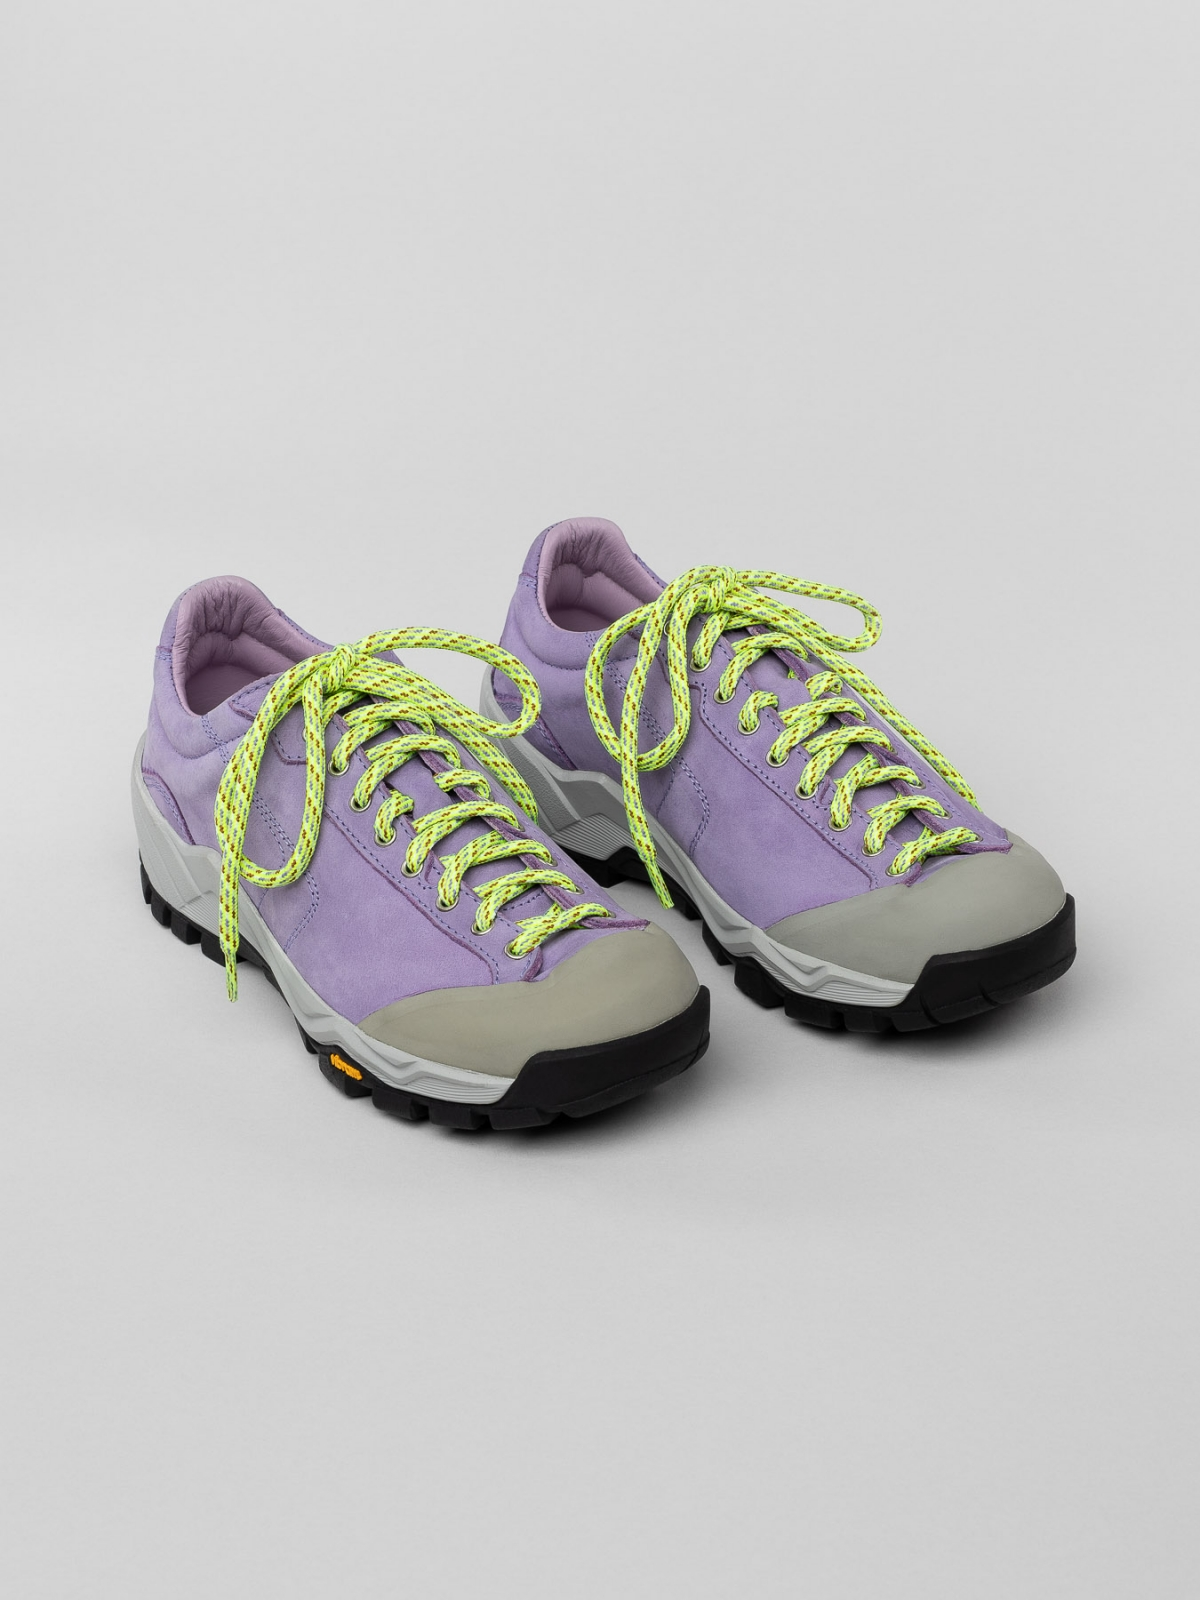 Diemme Movida Purple sneakers